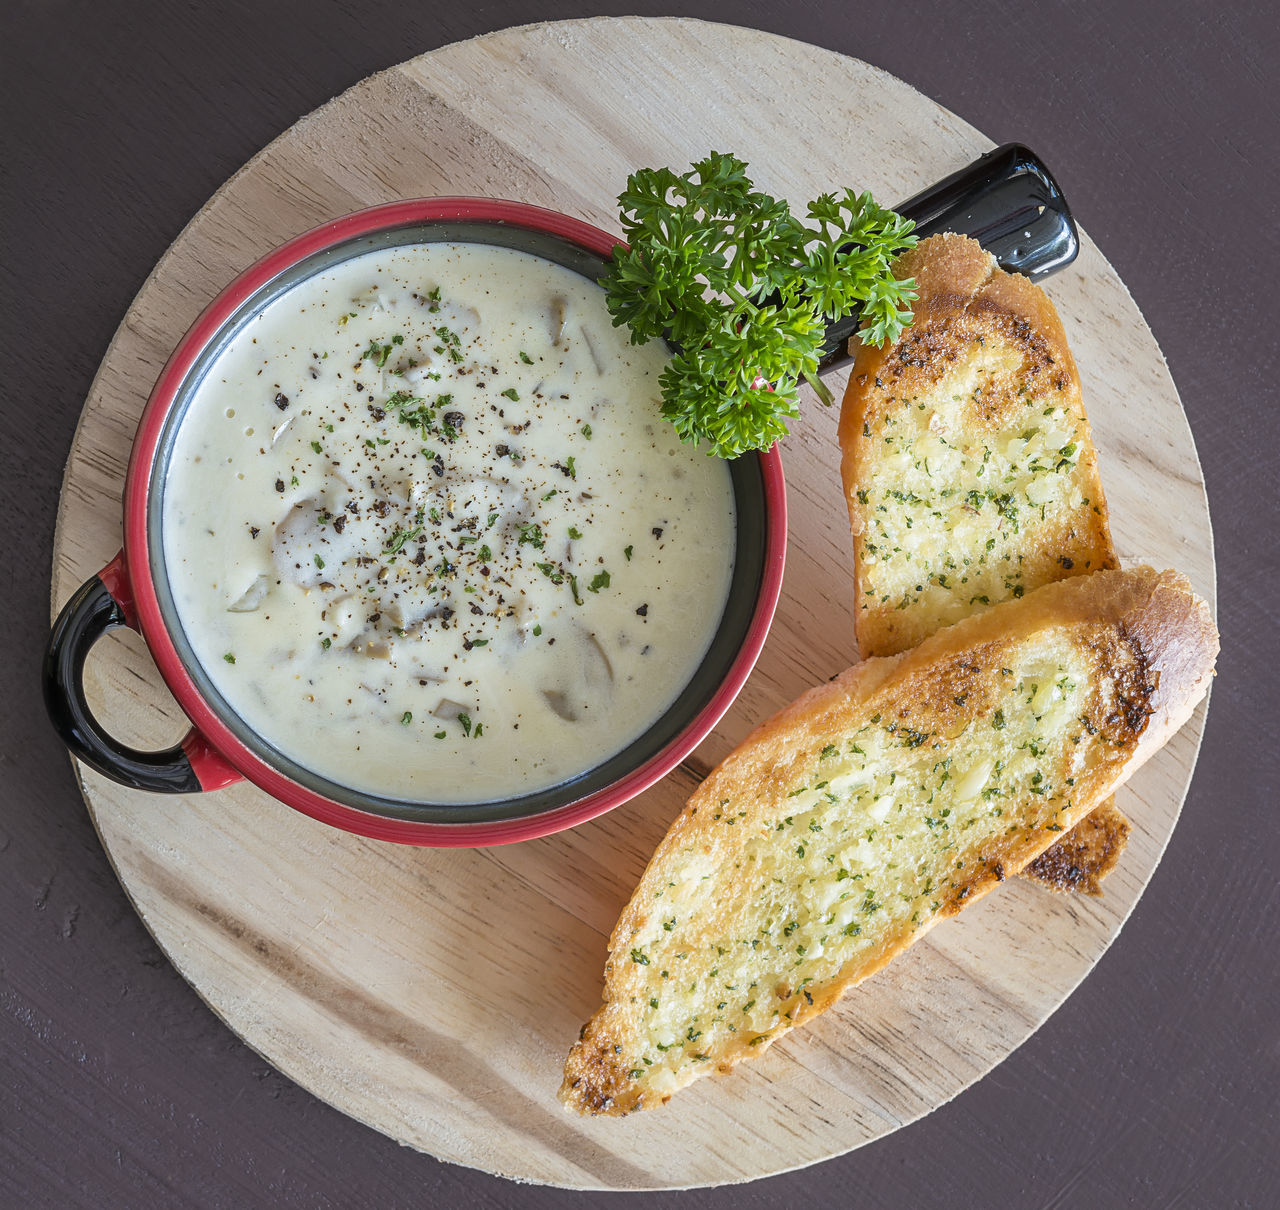 champignon cream soup serve with bread Baked Bread Champignon Cream Food Food And Drink Healthy Eating Mushrooms Soup Toasted Bread